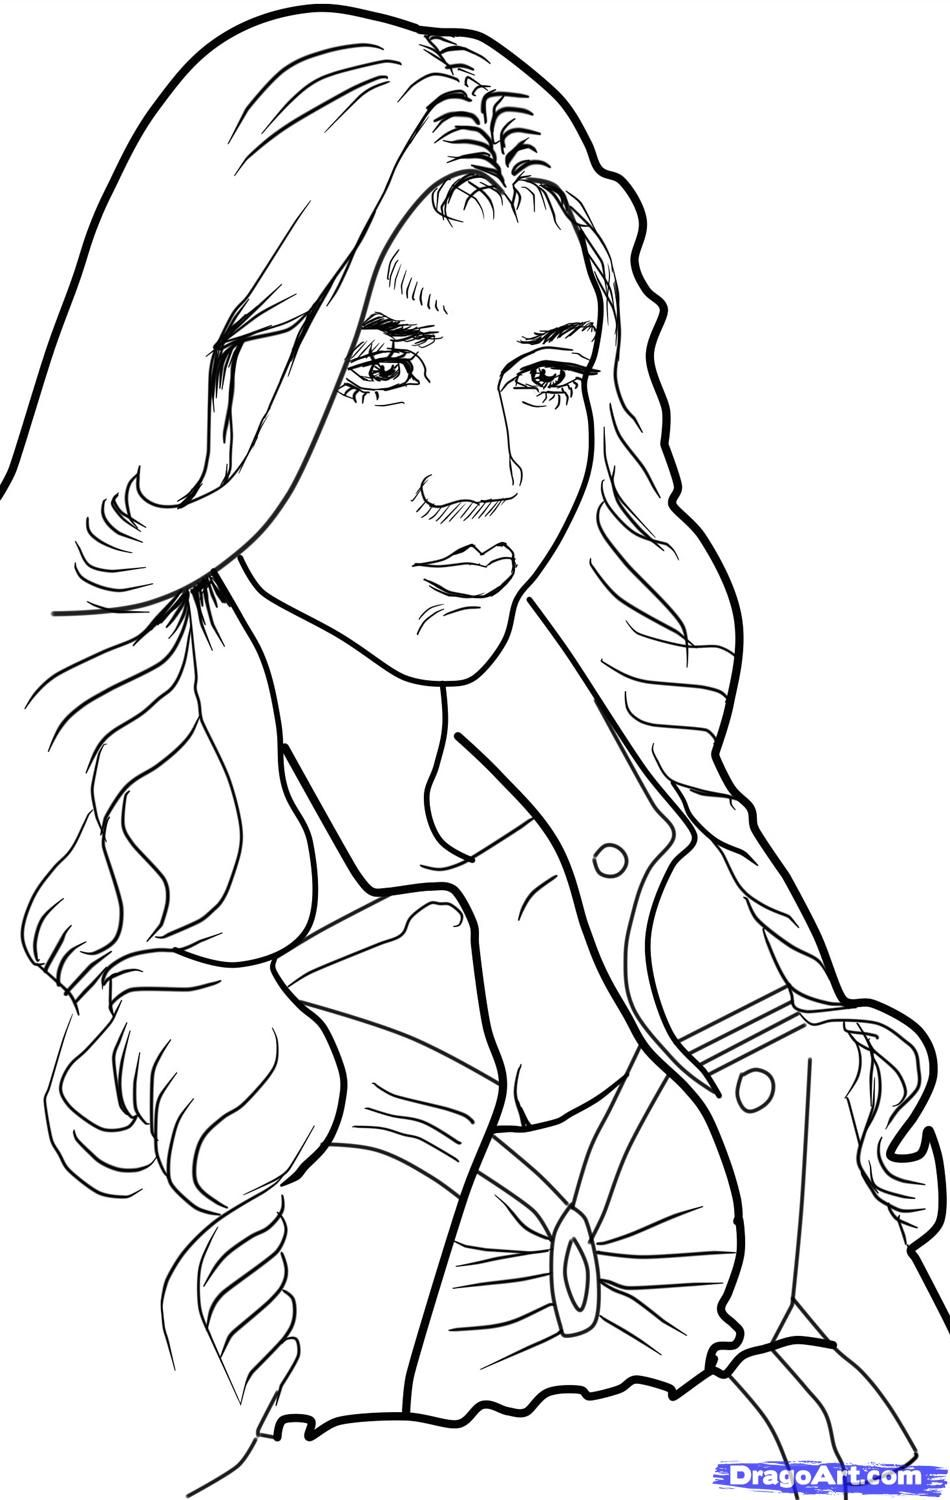 coloring sheet vampire diaries coloring pages vampire diaries coloring pages kerra vampire pages coloring sheet diaries coloring